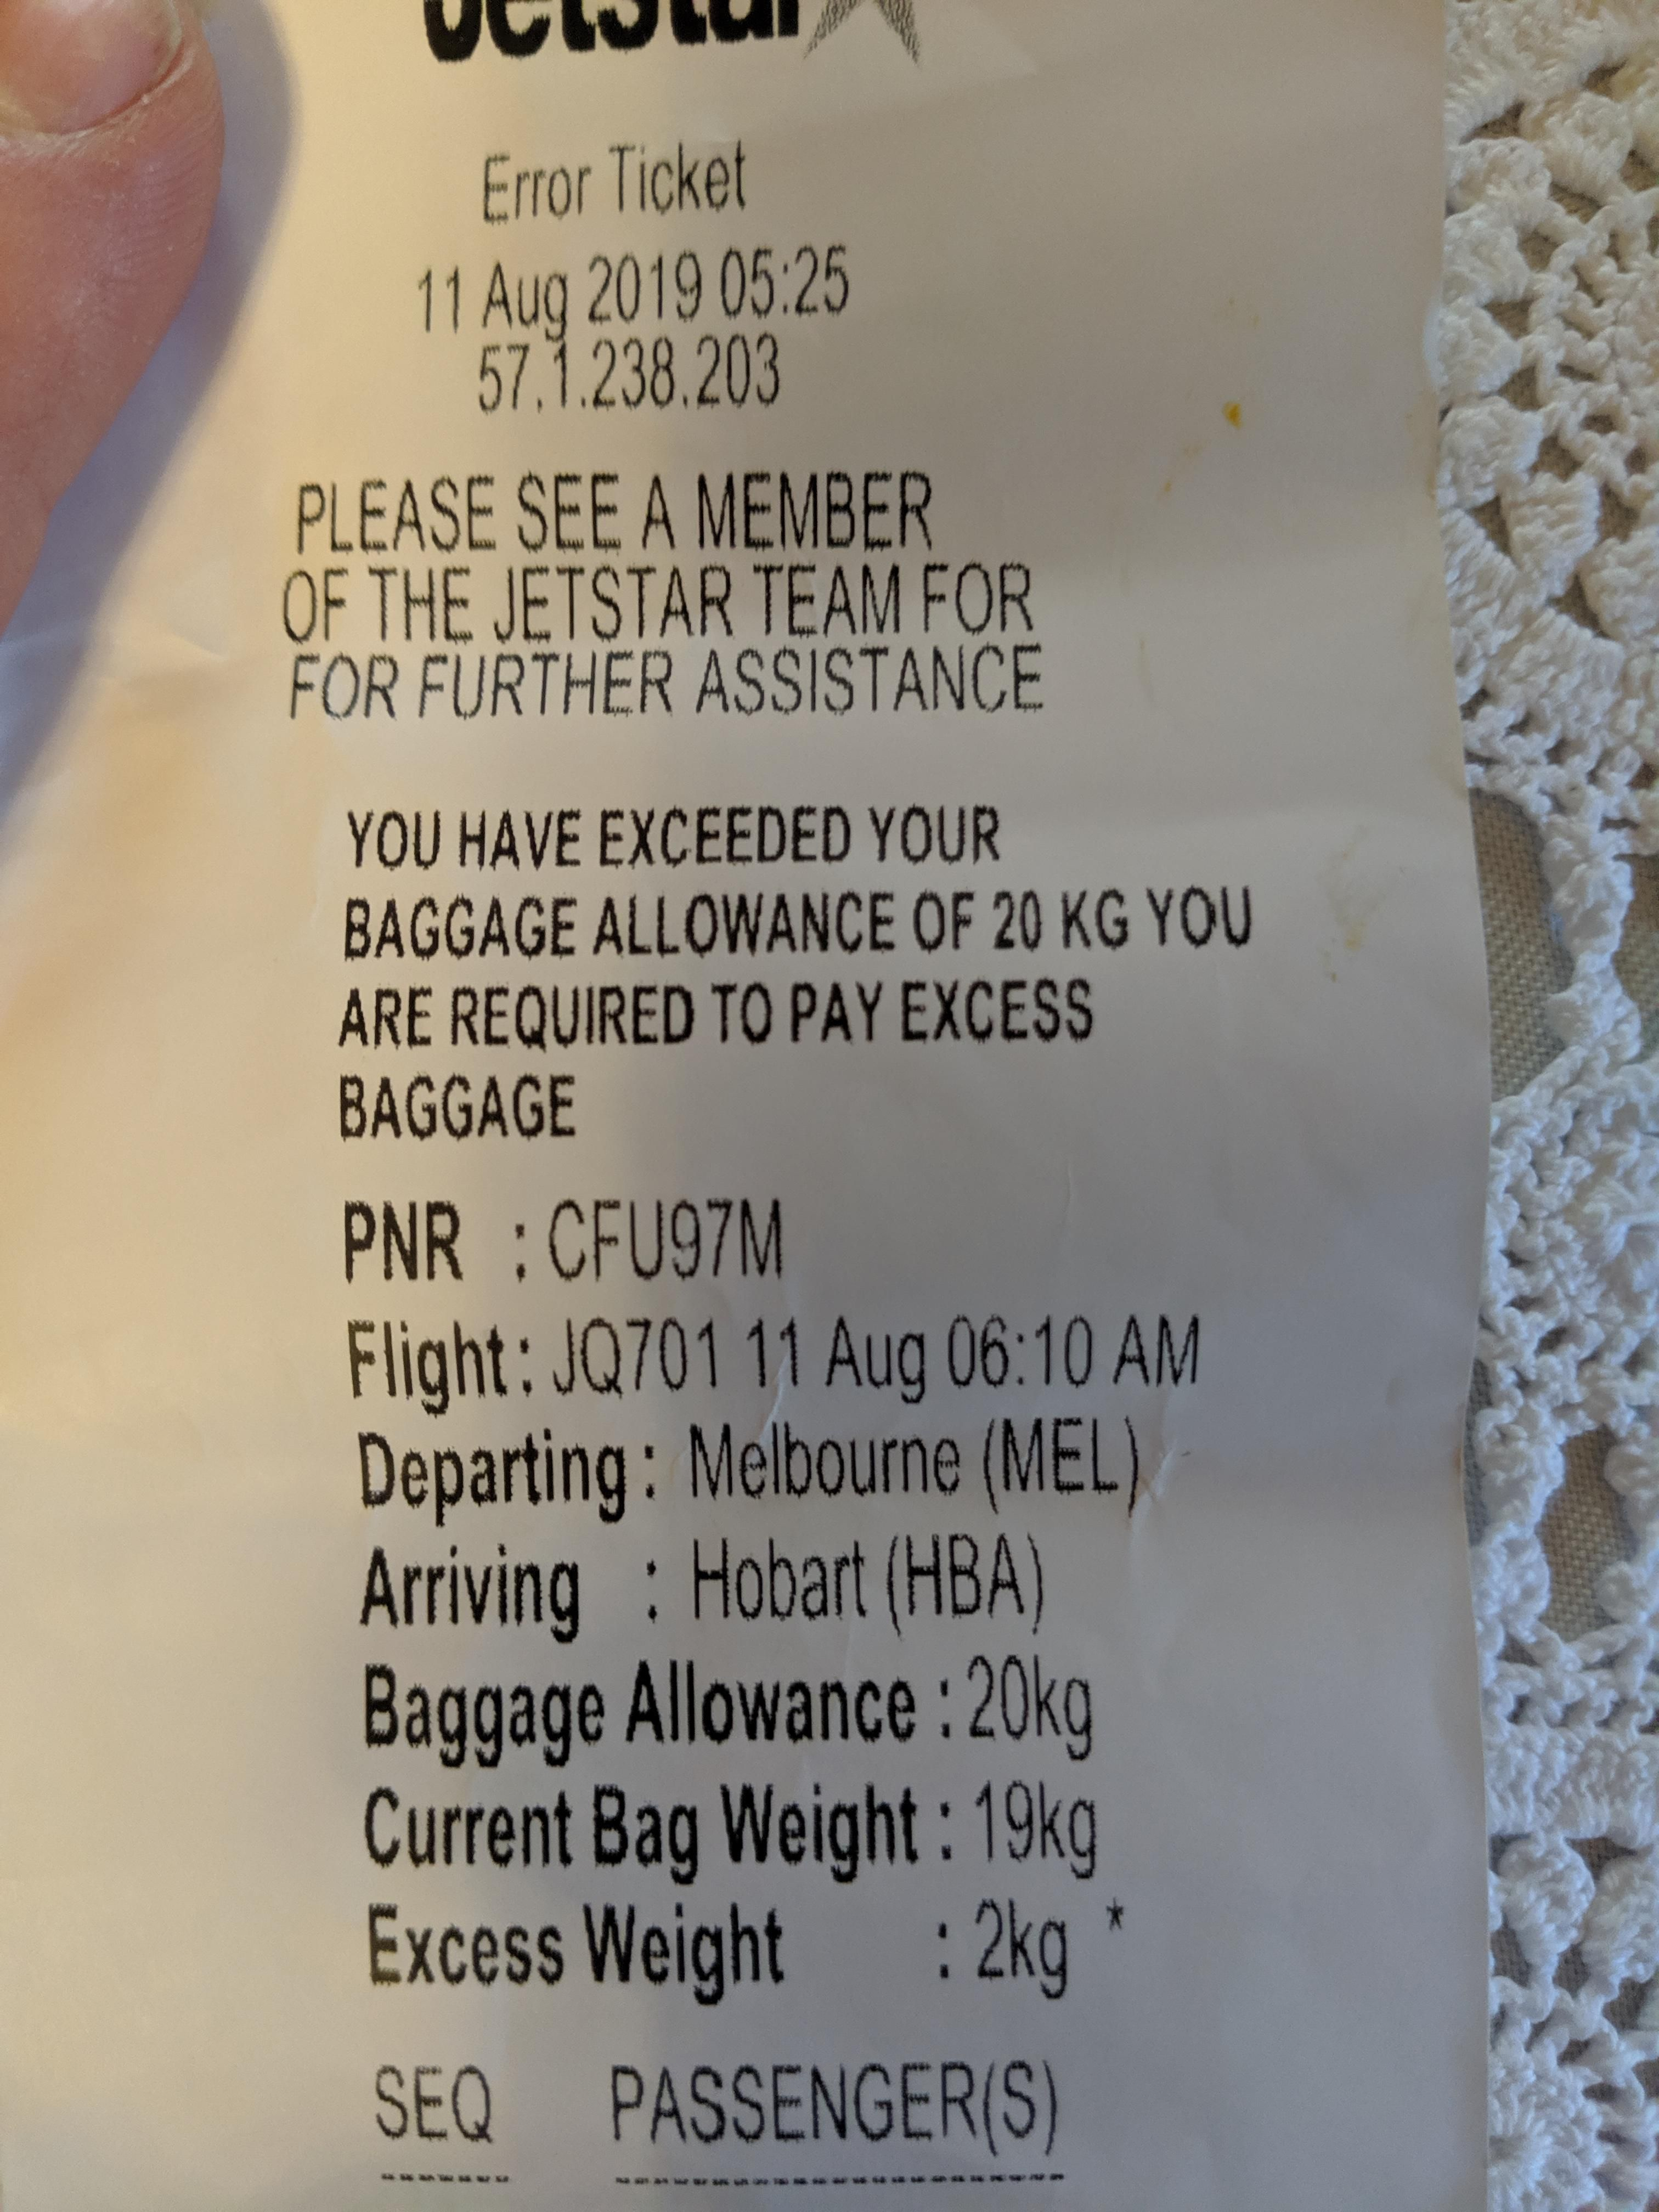 Jetstar claiming I exceed my 20kg limit by 2kg with a 19kg bag ...